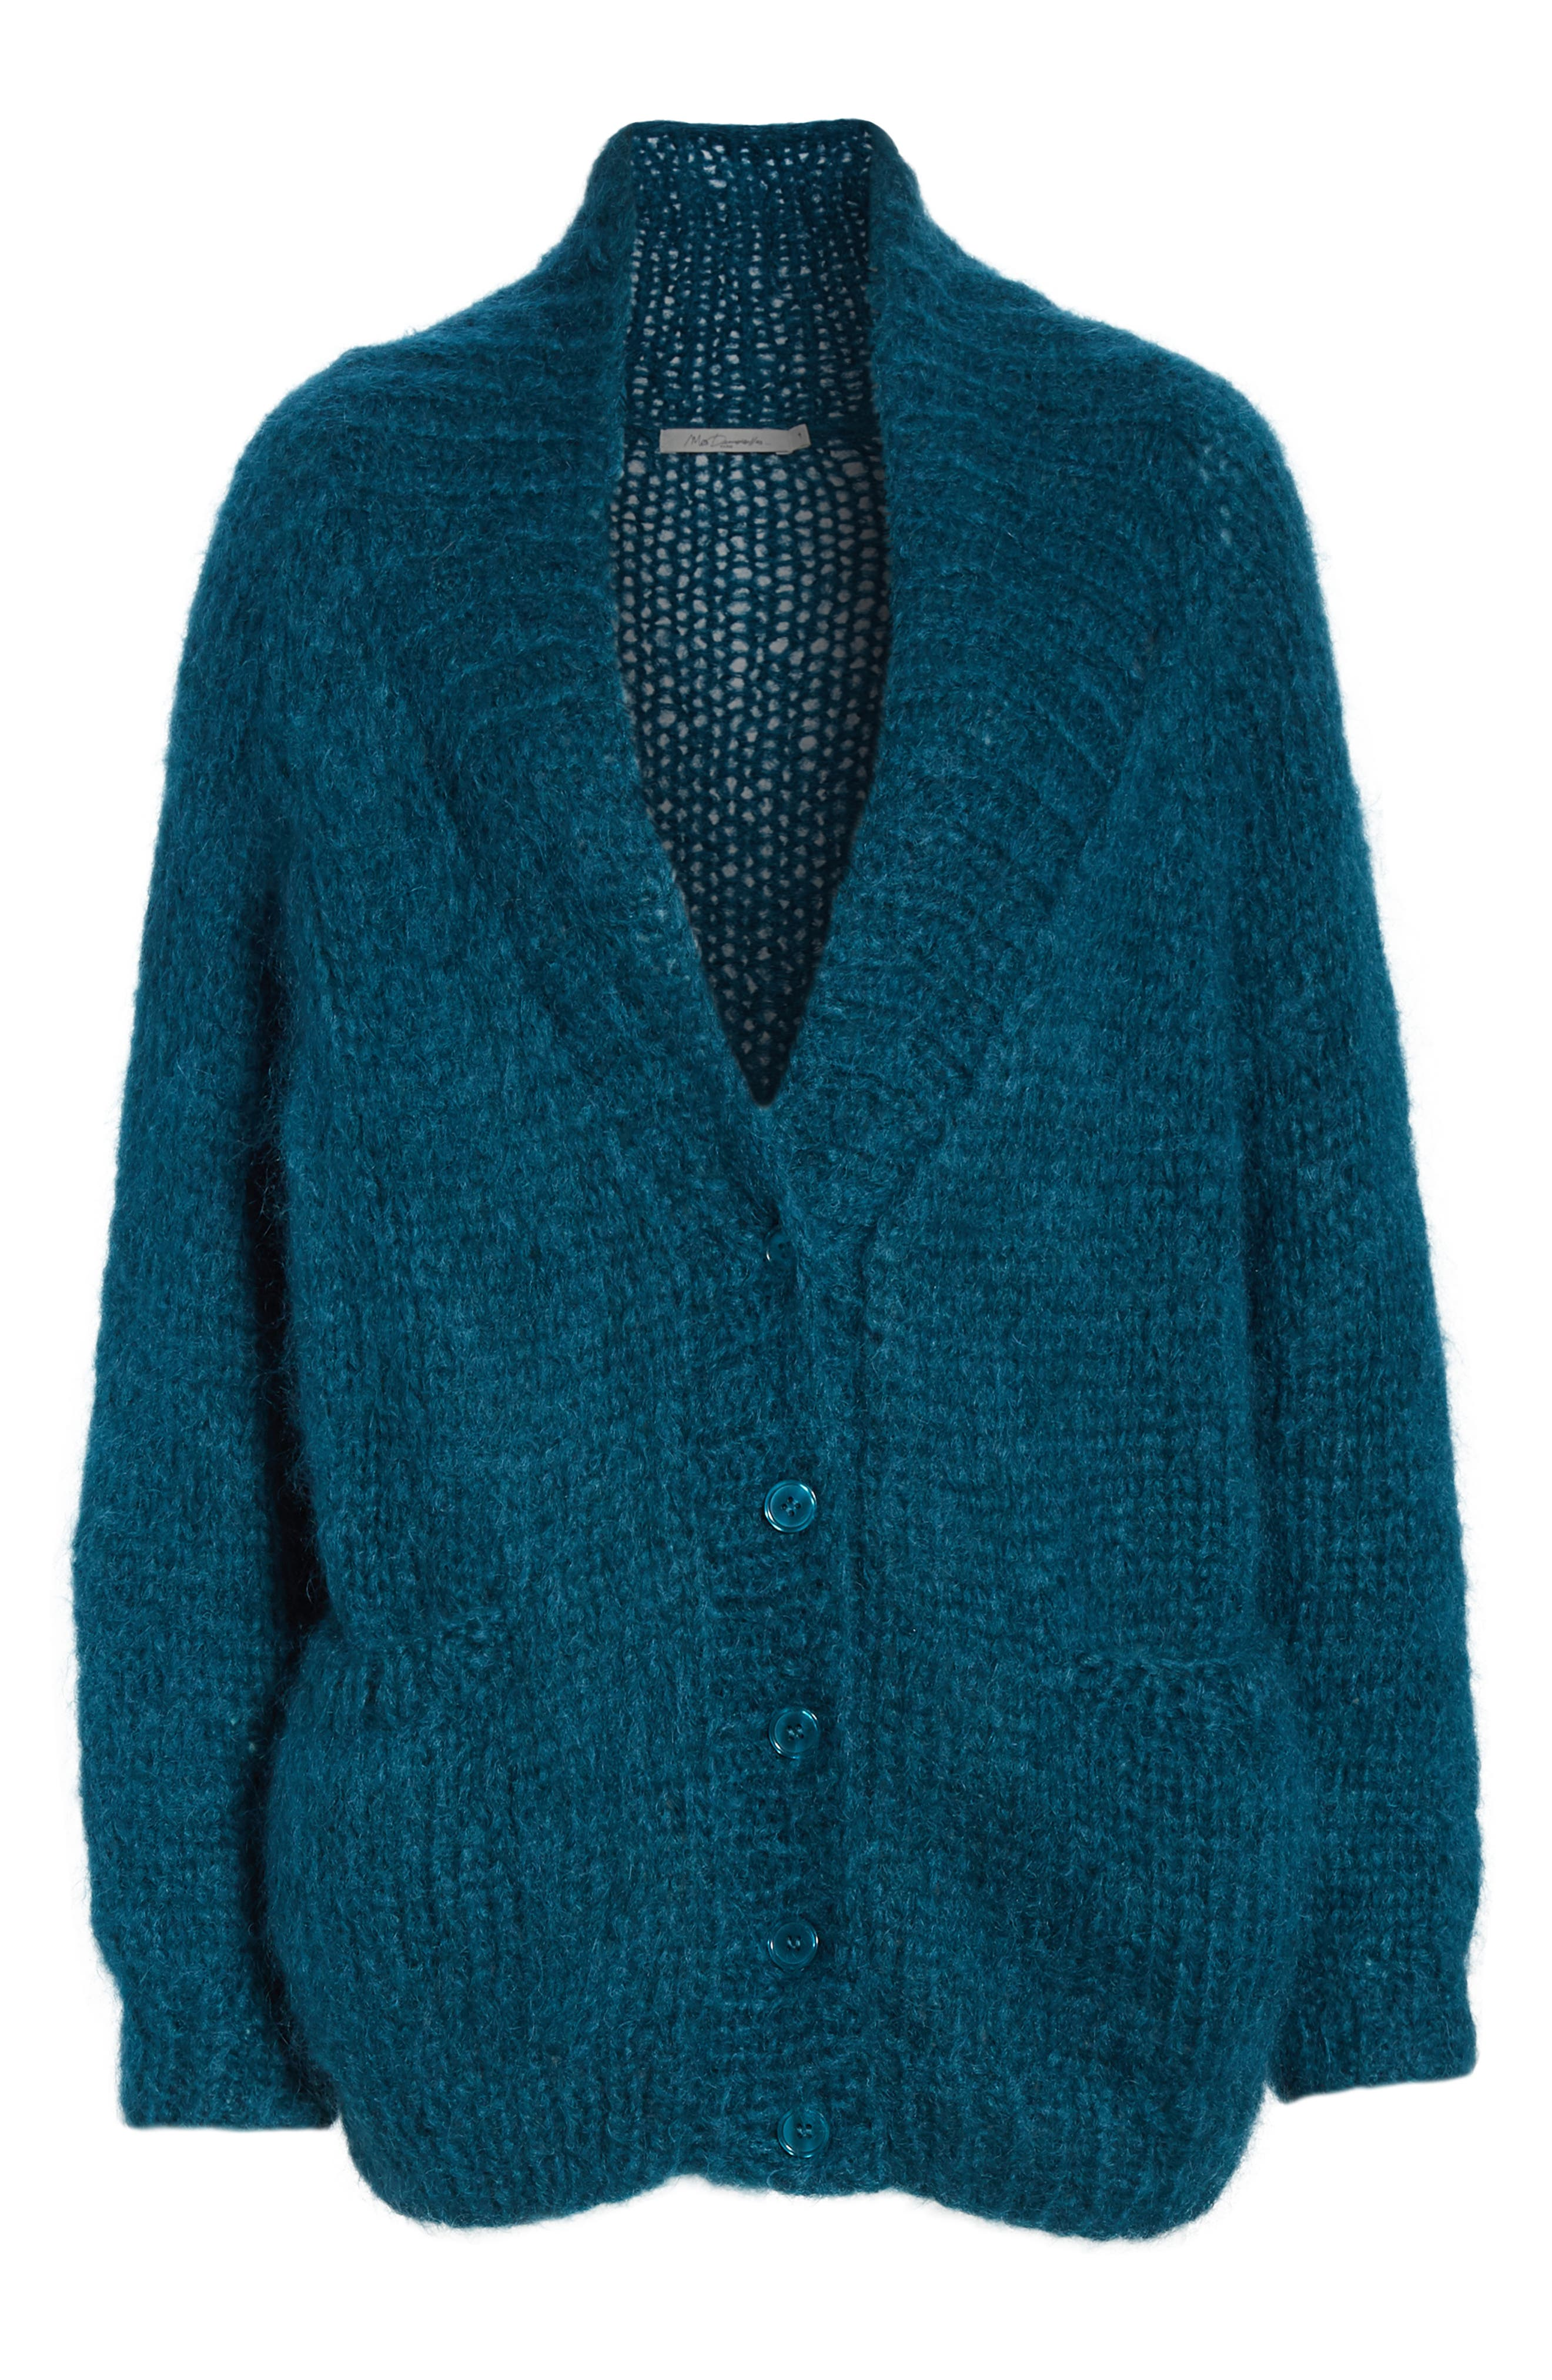 Knitted Cardigan,                             Alternate thumbnail 6, color,                             440